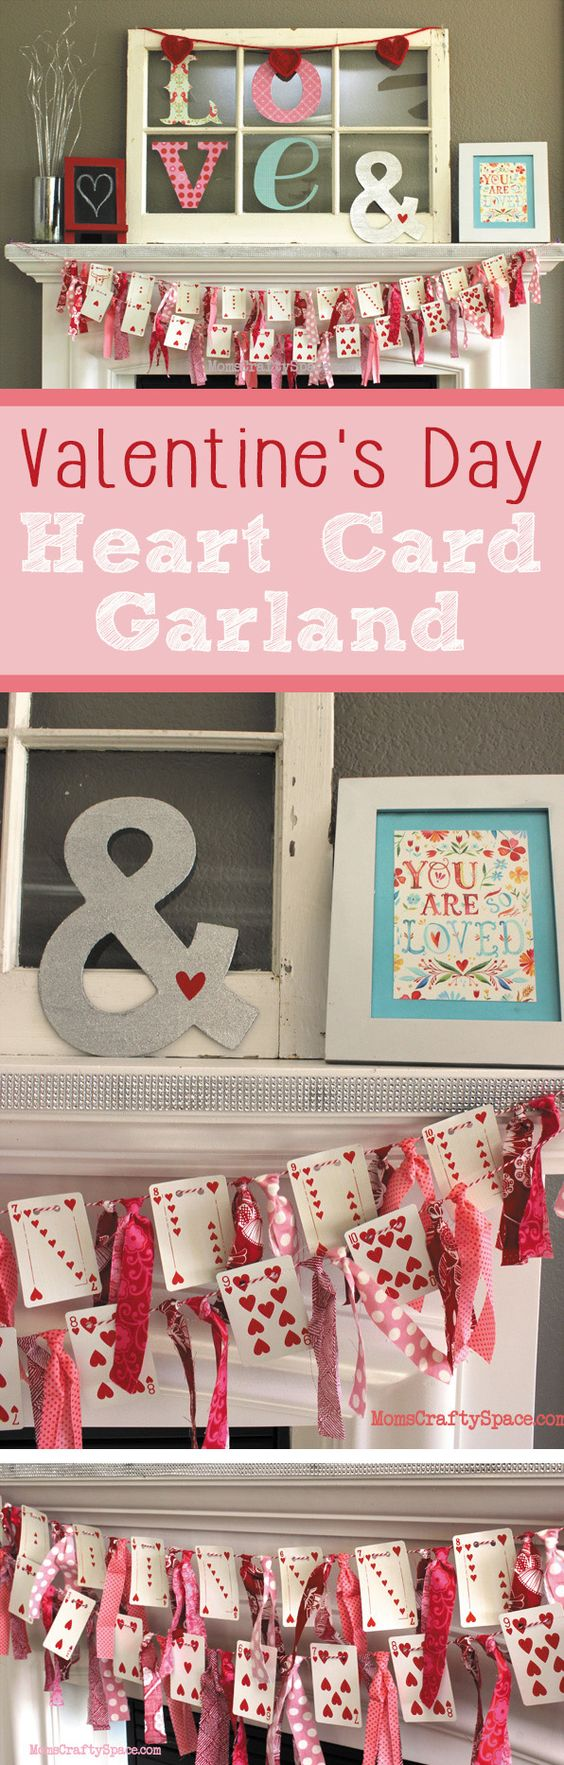 Valentine's Day Heart Playing Cards Banner Garland: via Happiness is Homemade - Perfect for your Valentine's Day Mantel Decorations!